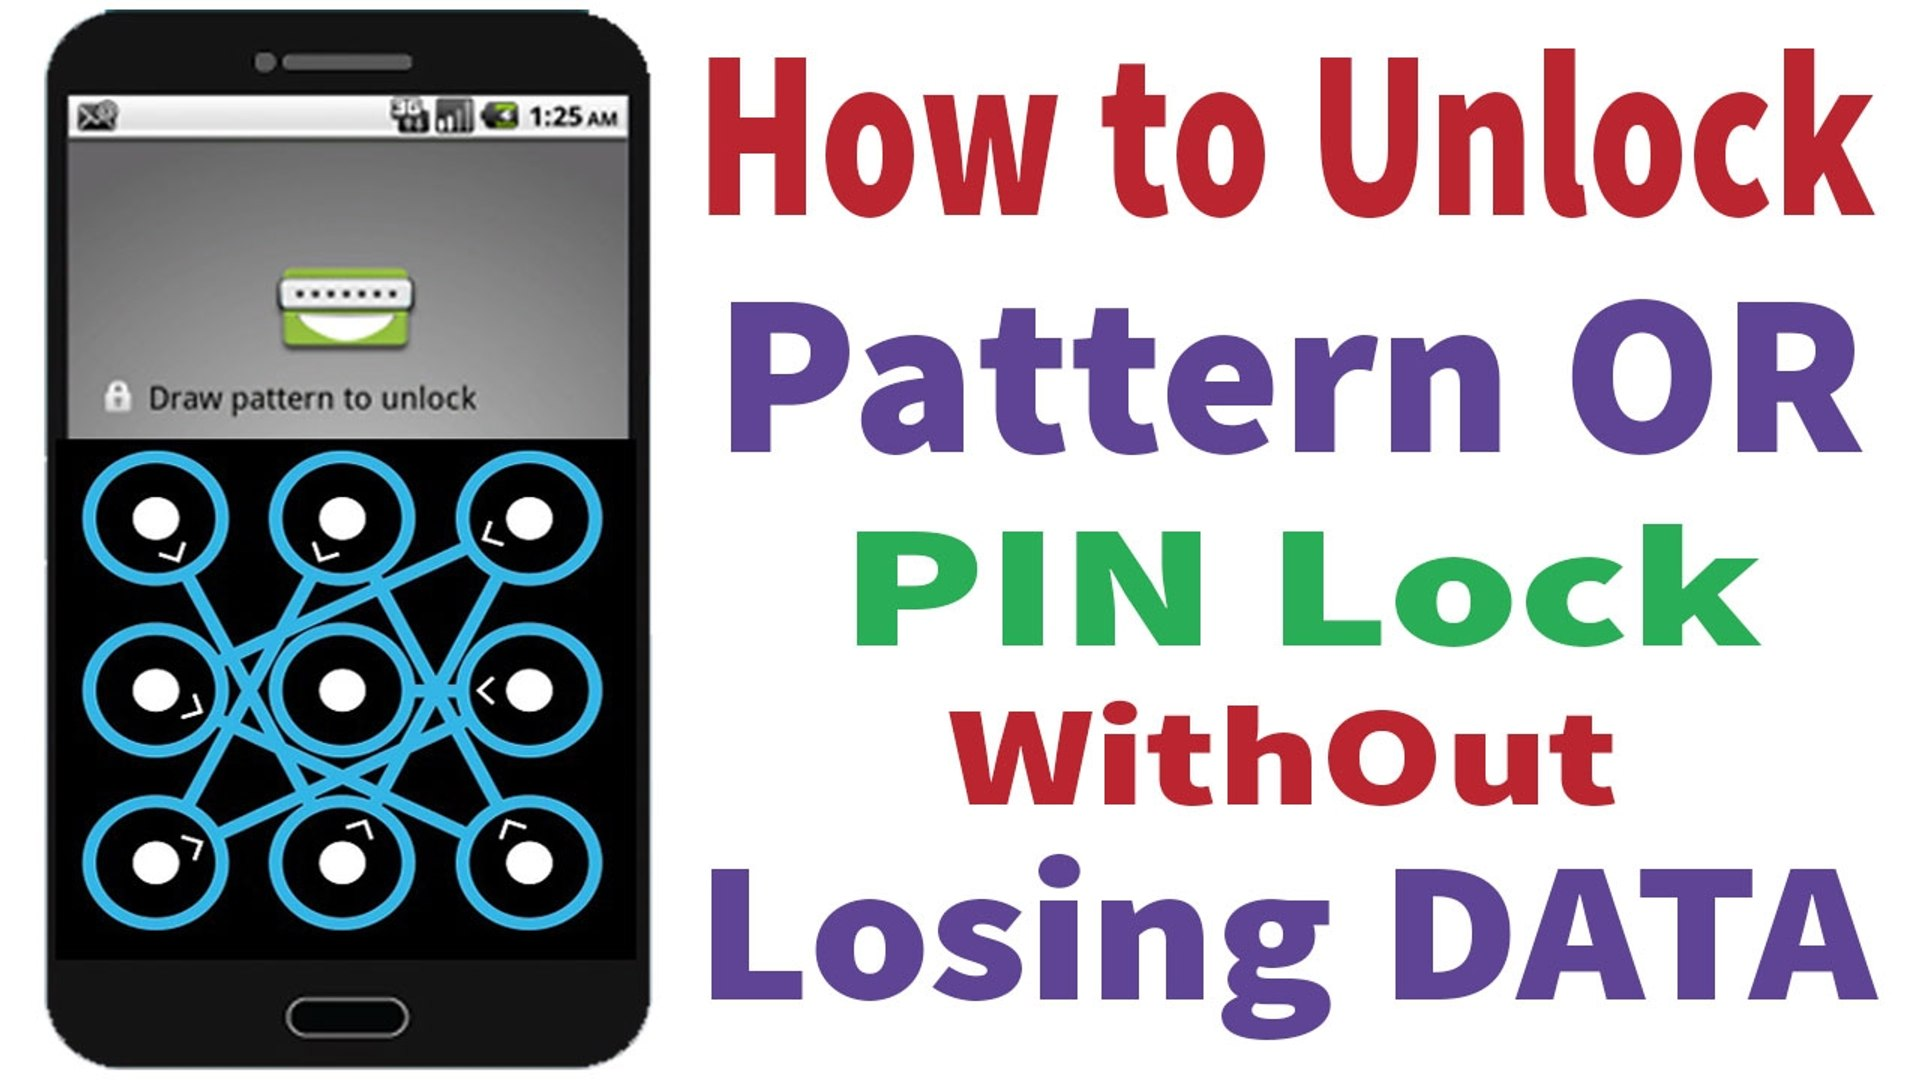 How to Unlock Android Pattern or Pin Lock without losing data _ Without USB  Debugging